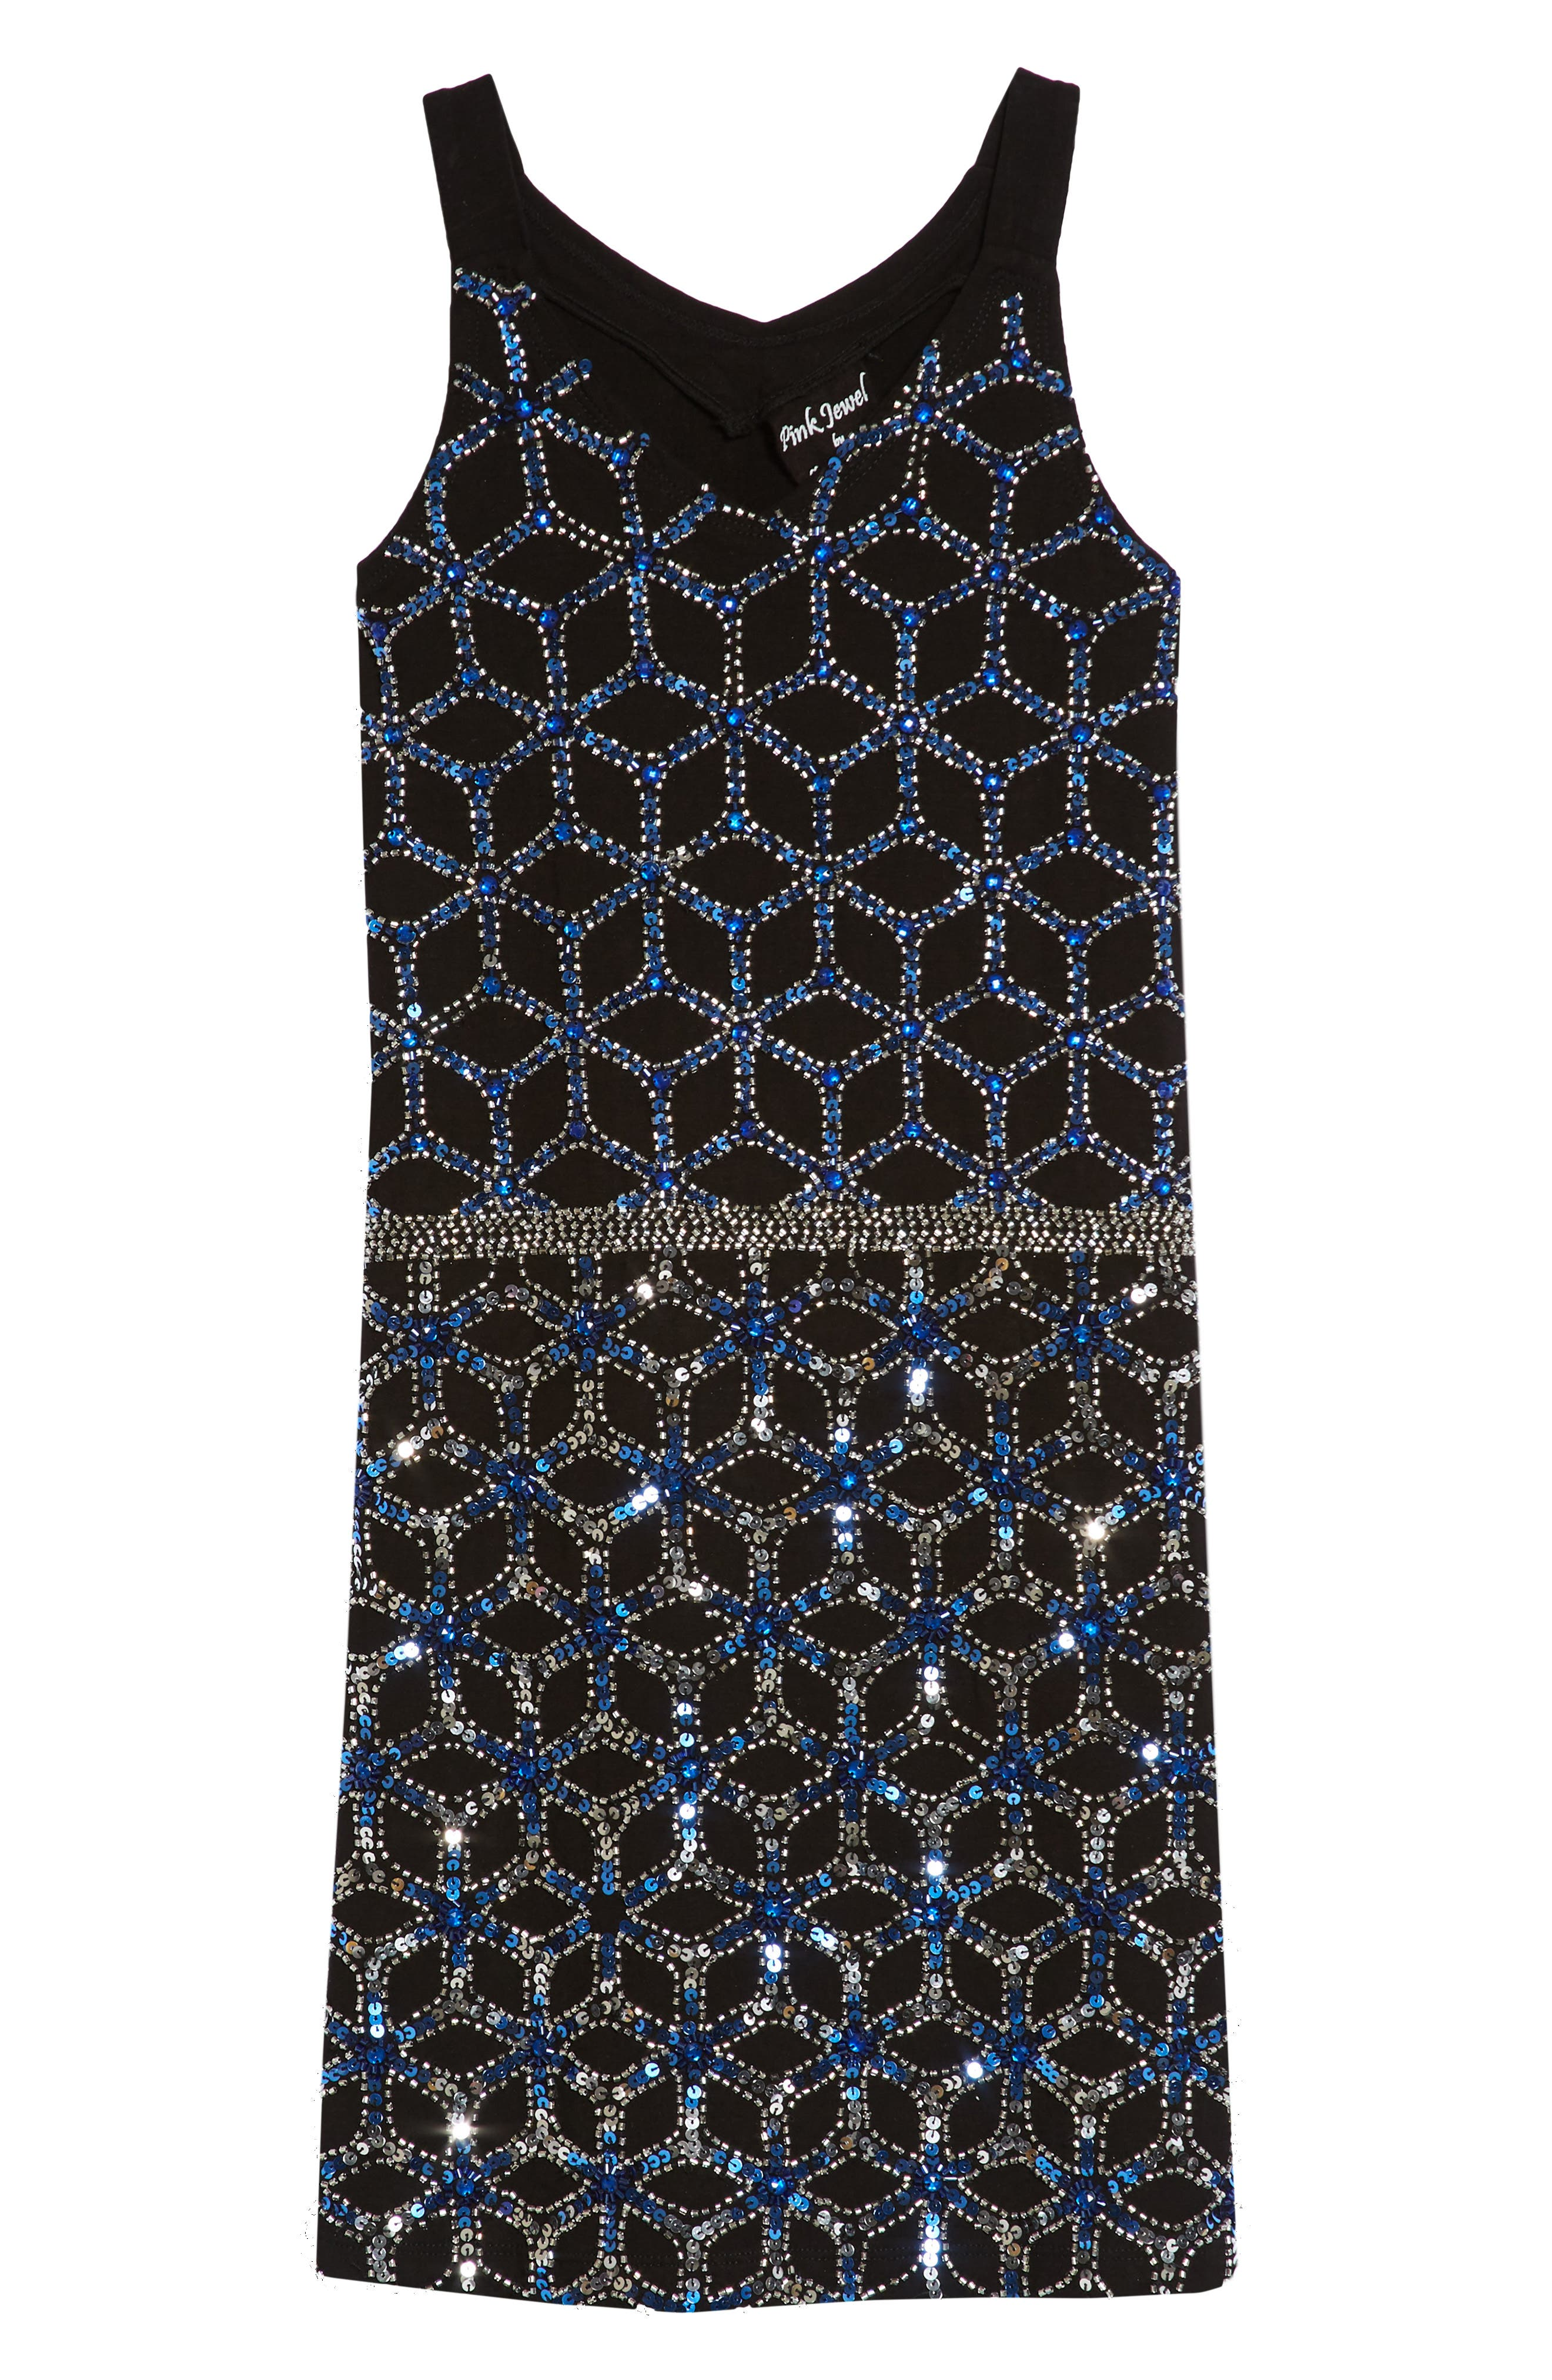 Sequined & Beaded Tank Dress,                             Main thumbnail 1, color,                             001